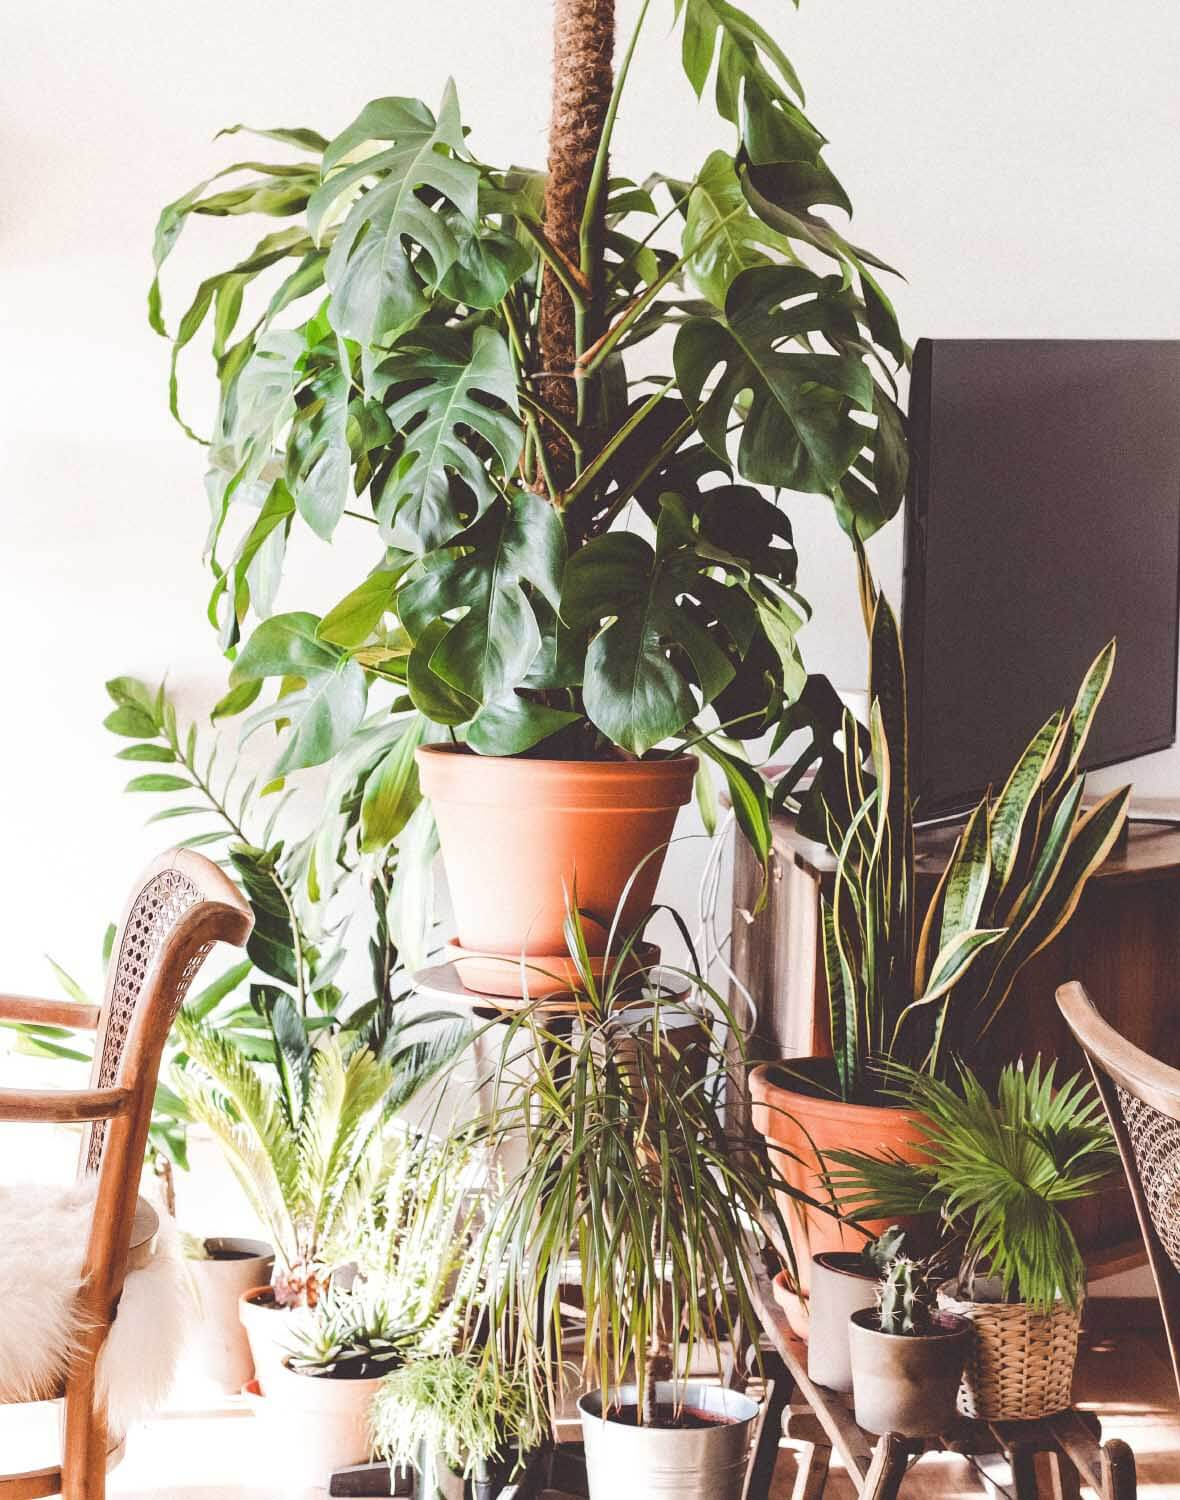 siteassets/img/article/inspiration/plants/plant_5.jpg